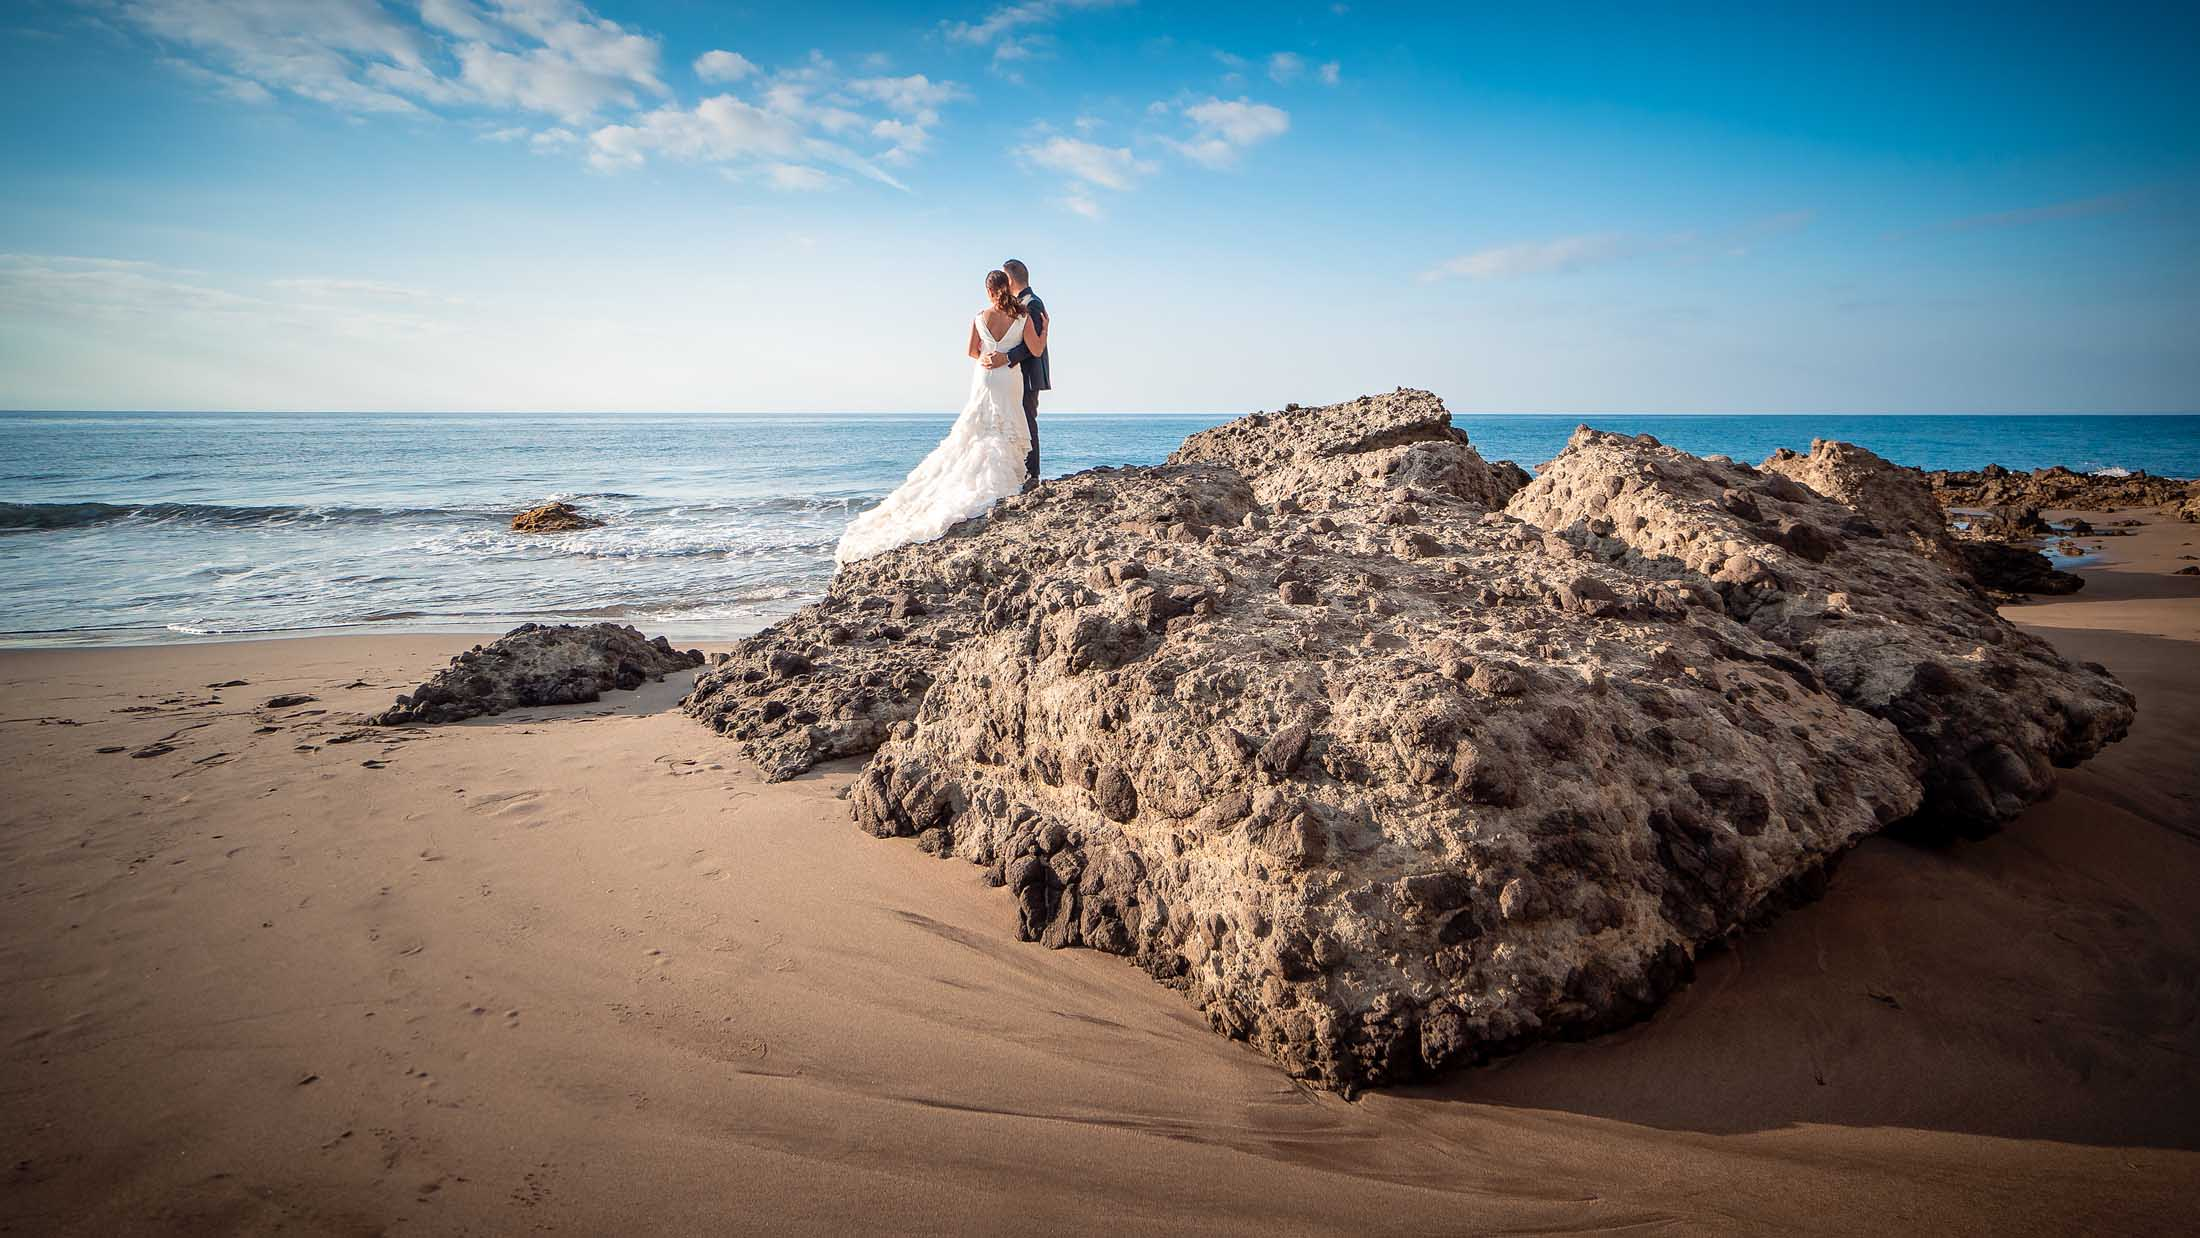 Postboda en la playa de Monsul